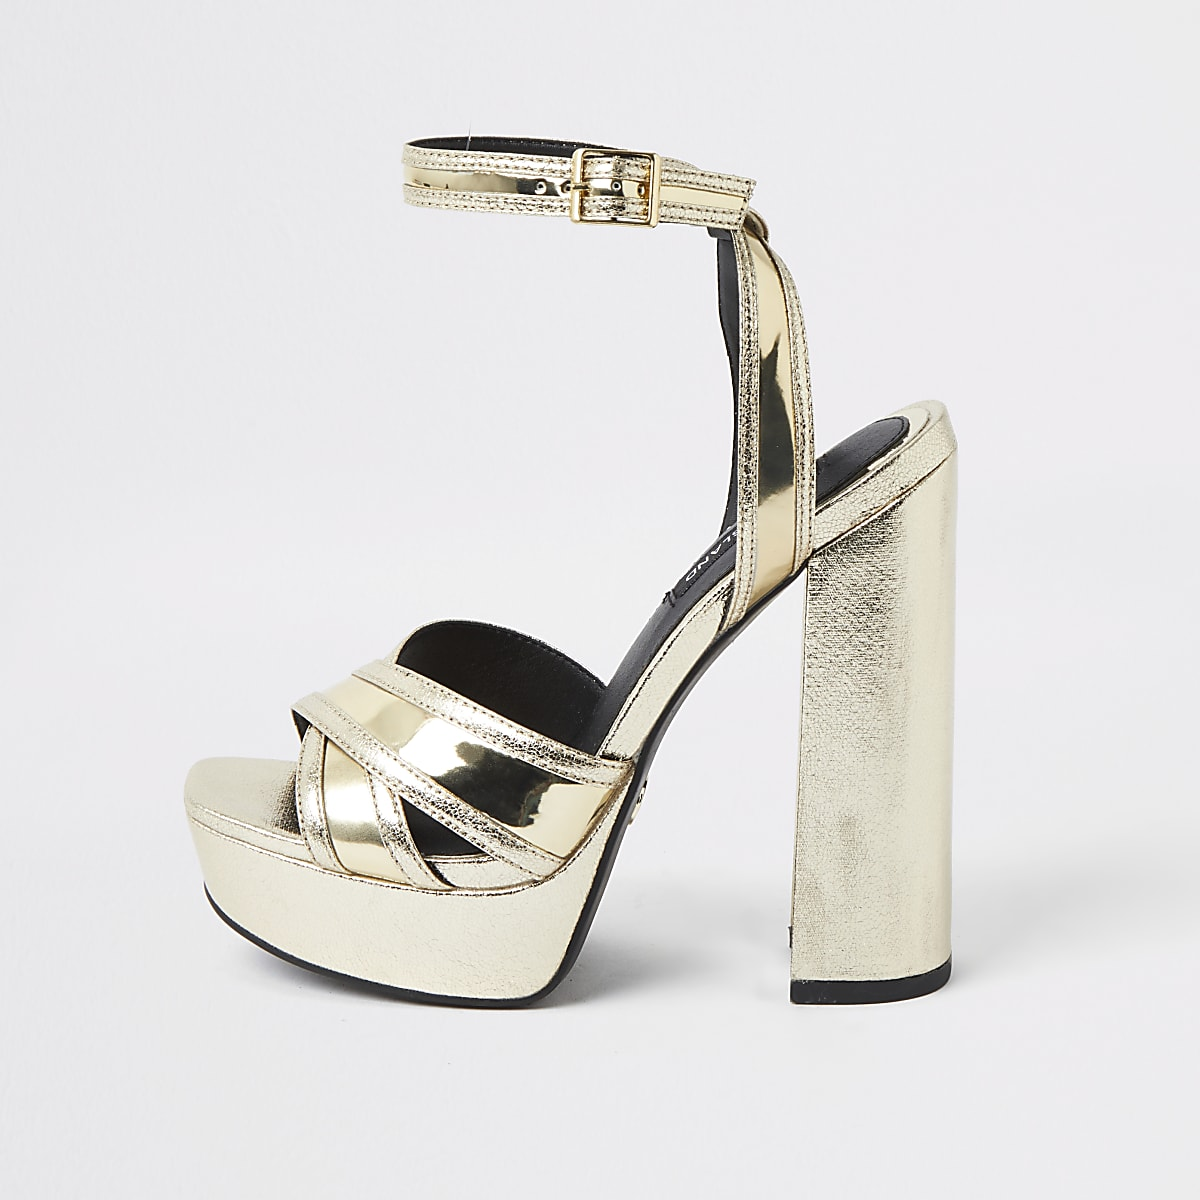 Gold metallic cross strap platform heels